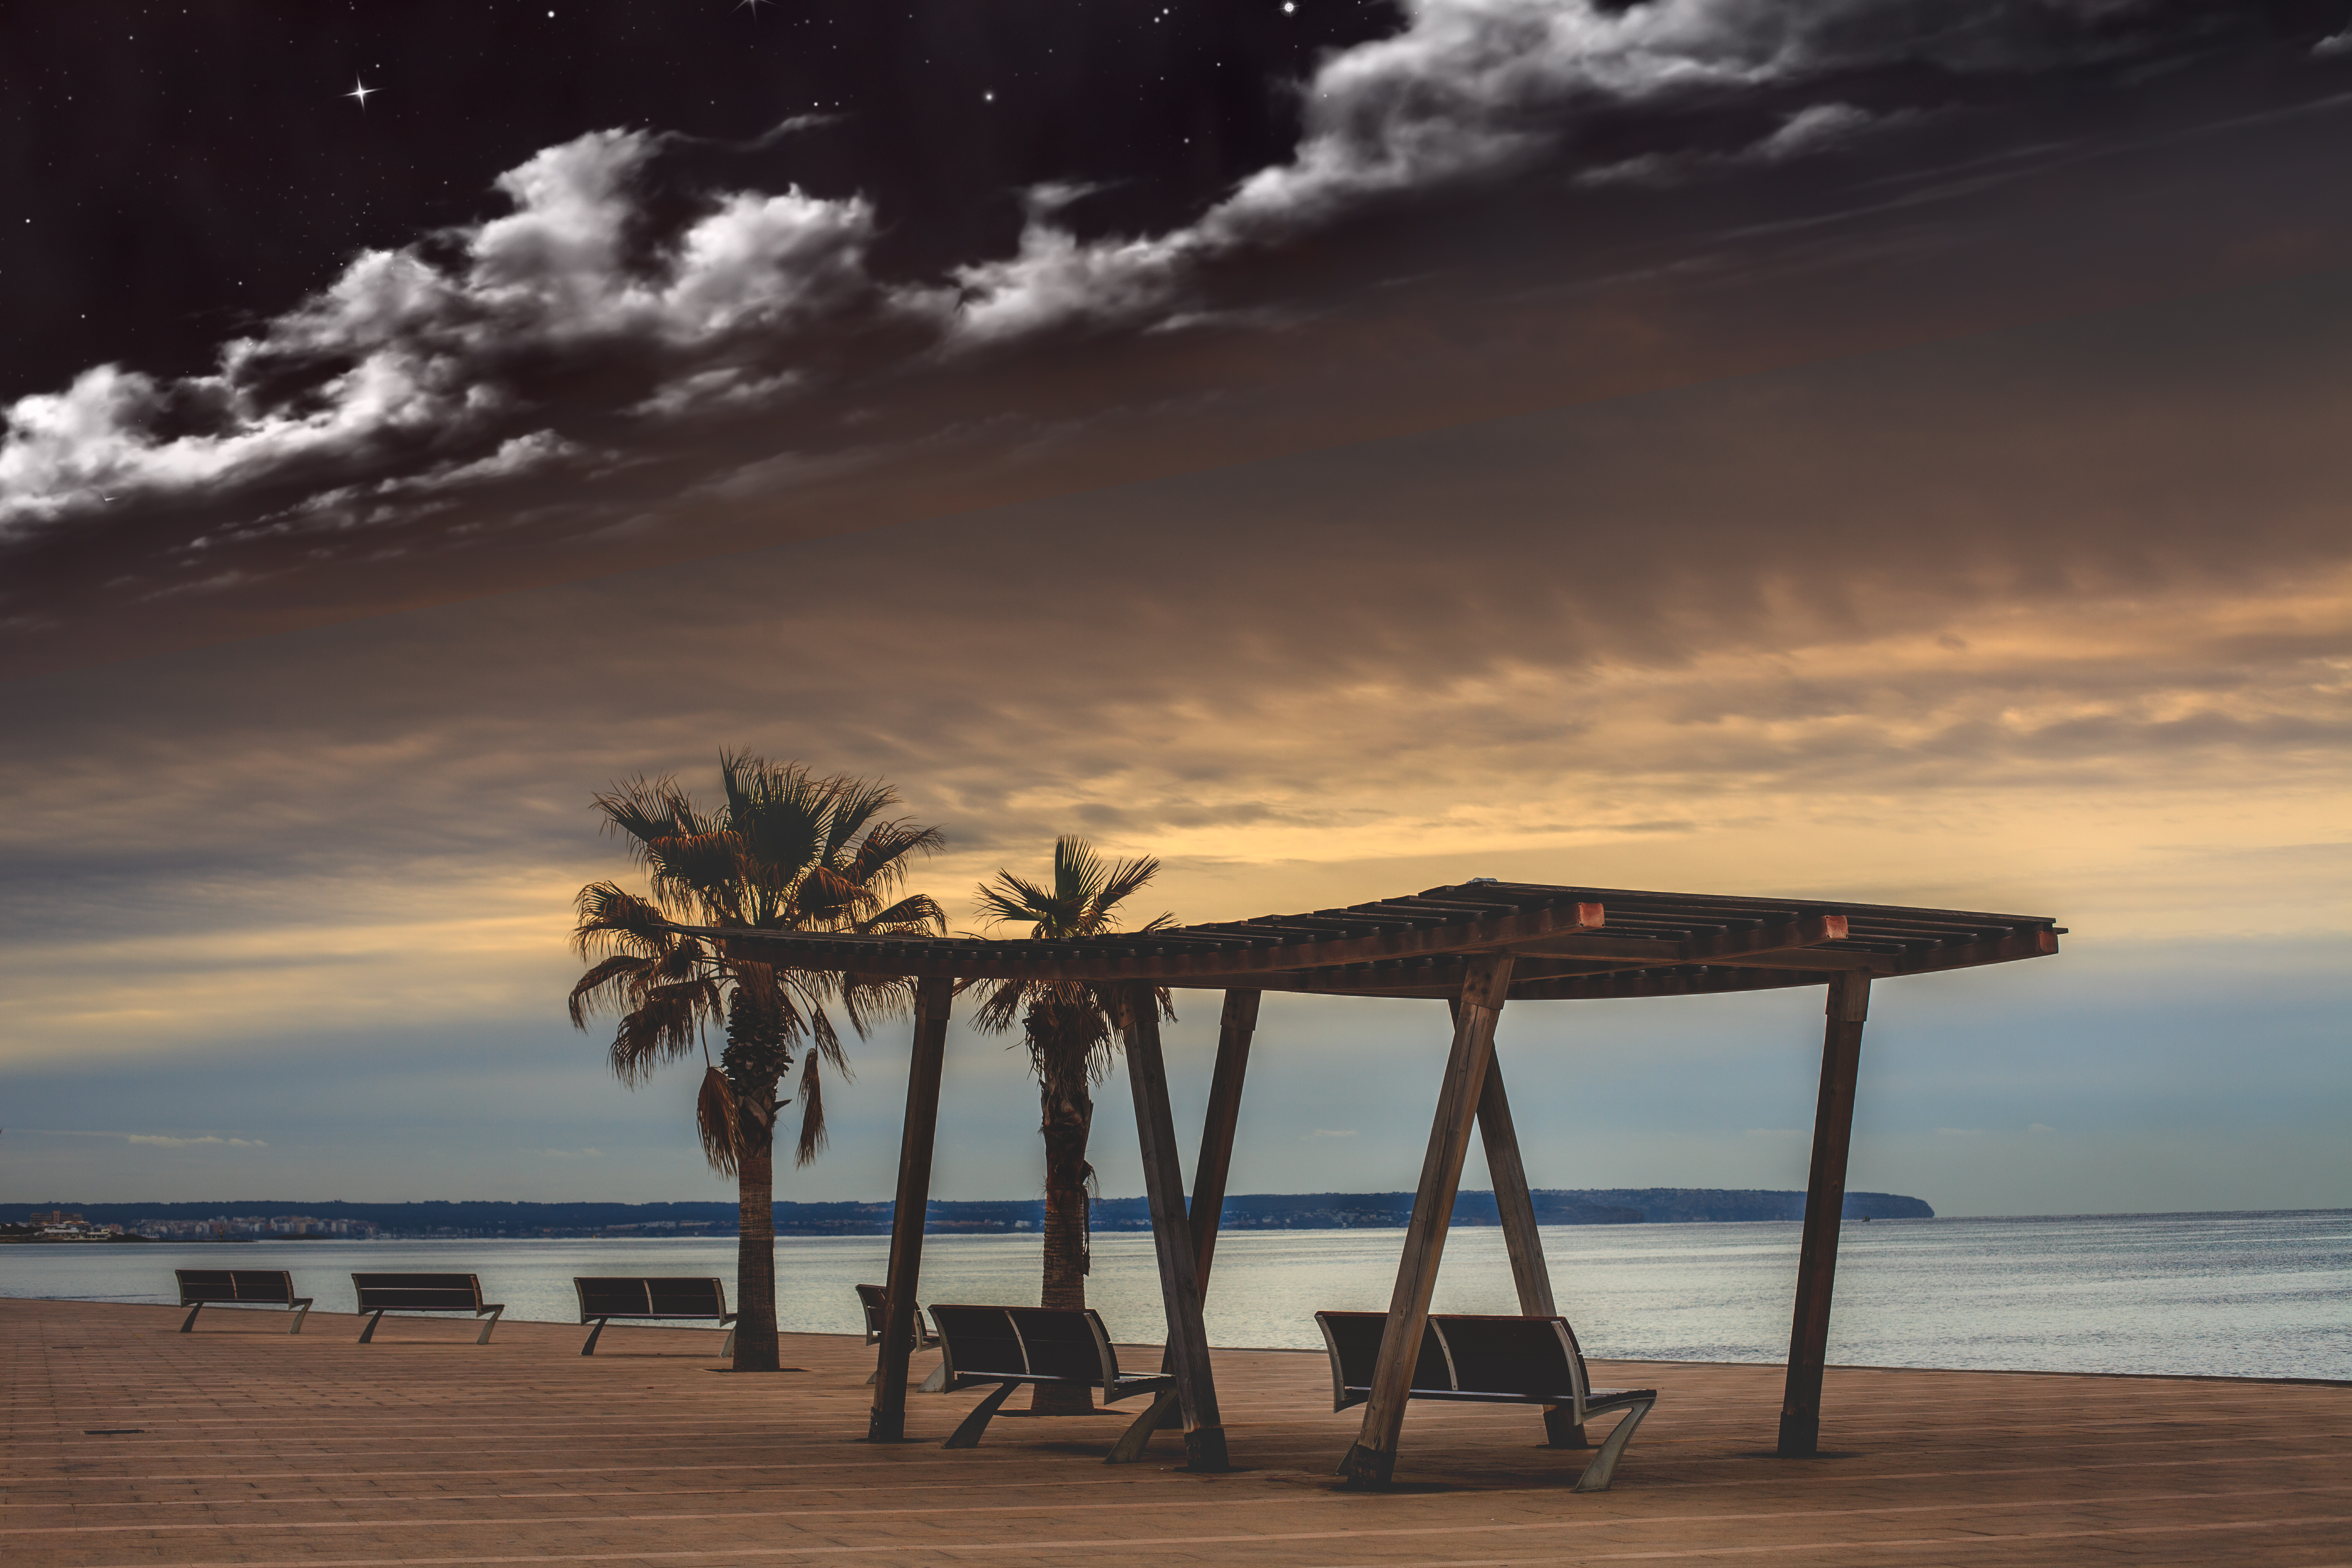 124749 download wallpaper Nature, Sea, Clouds, Palms, Starry Sky, Relaxation, Rest, Evening, Benches screensavers and pictures for free